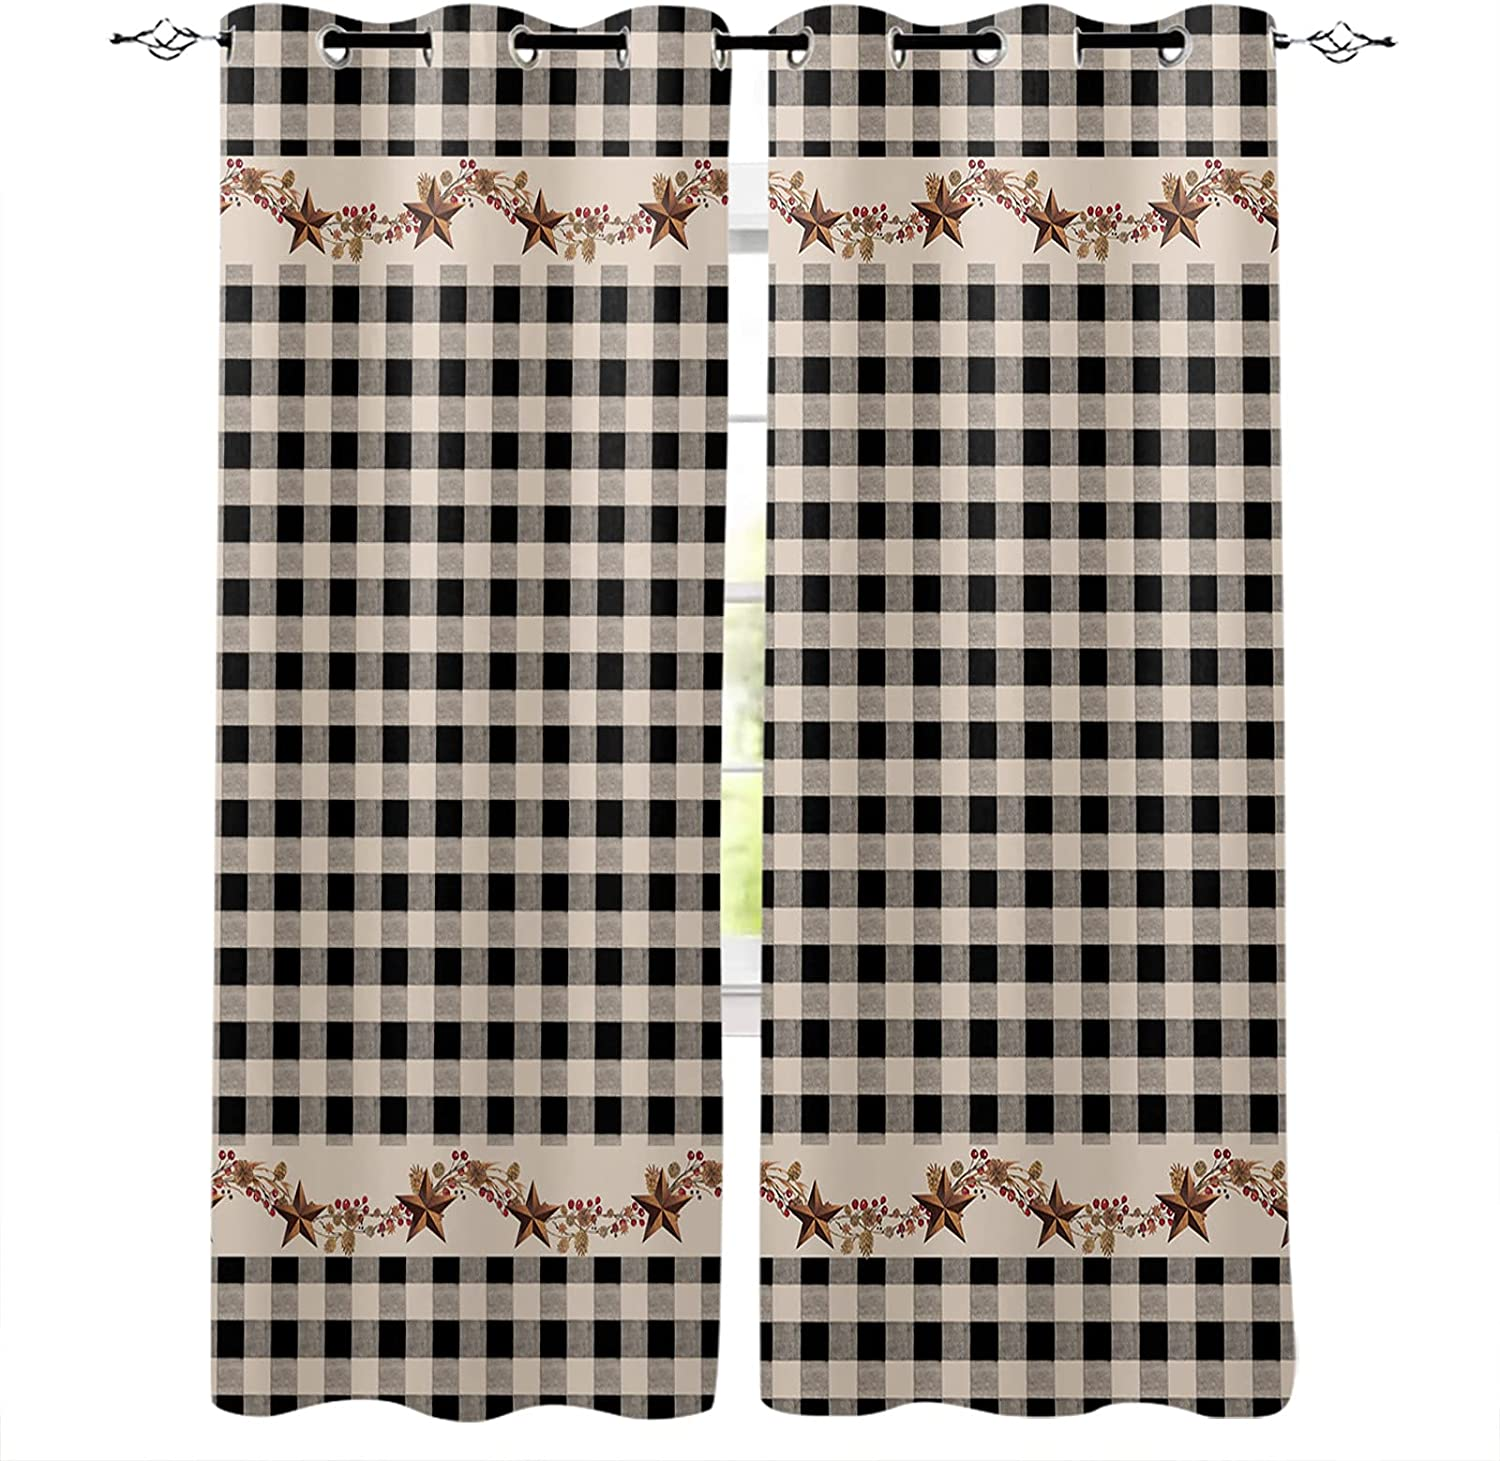 2021 spring and summer new 2 Panel Window Drapes for Kitchen Far Country Recommendation Star Cafe Vintage